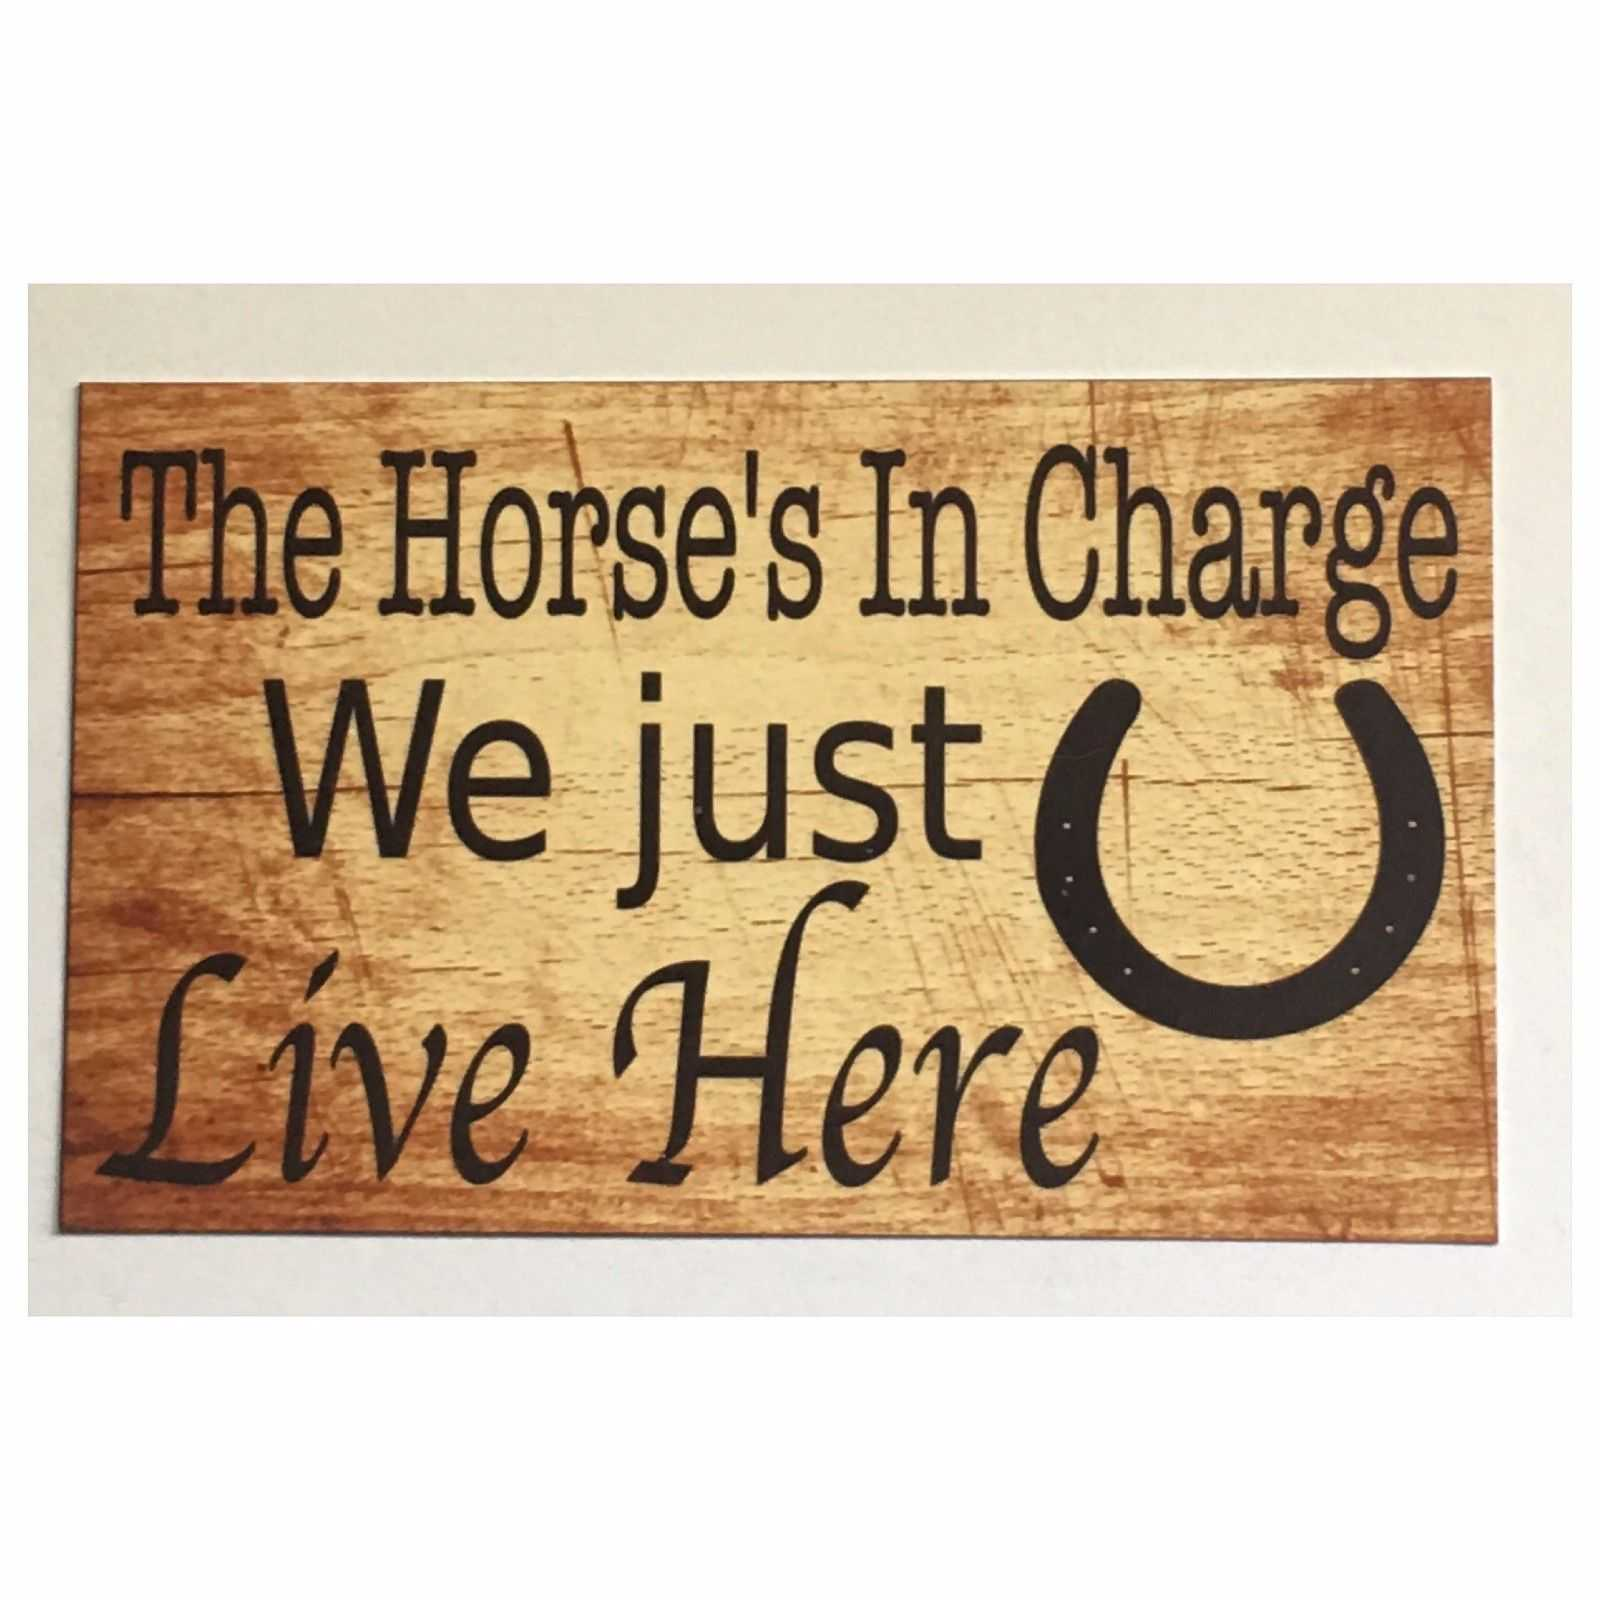 Horses In Charge We Just Live Here Horse Sign Wall Plaque or Hanging Plaques & Signs The Renmy Store